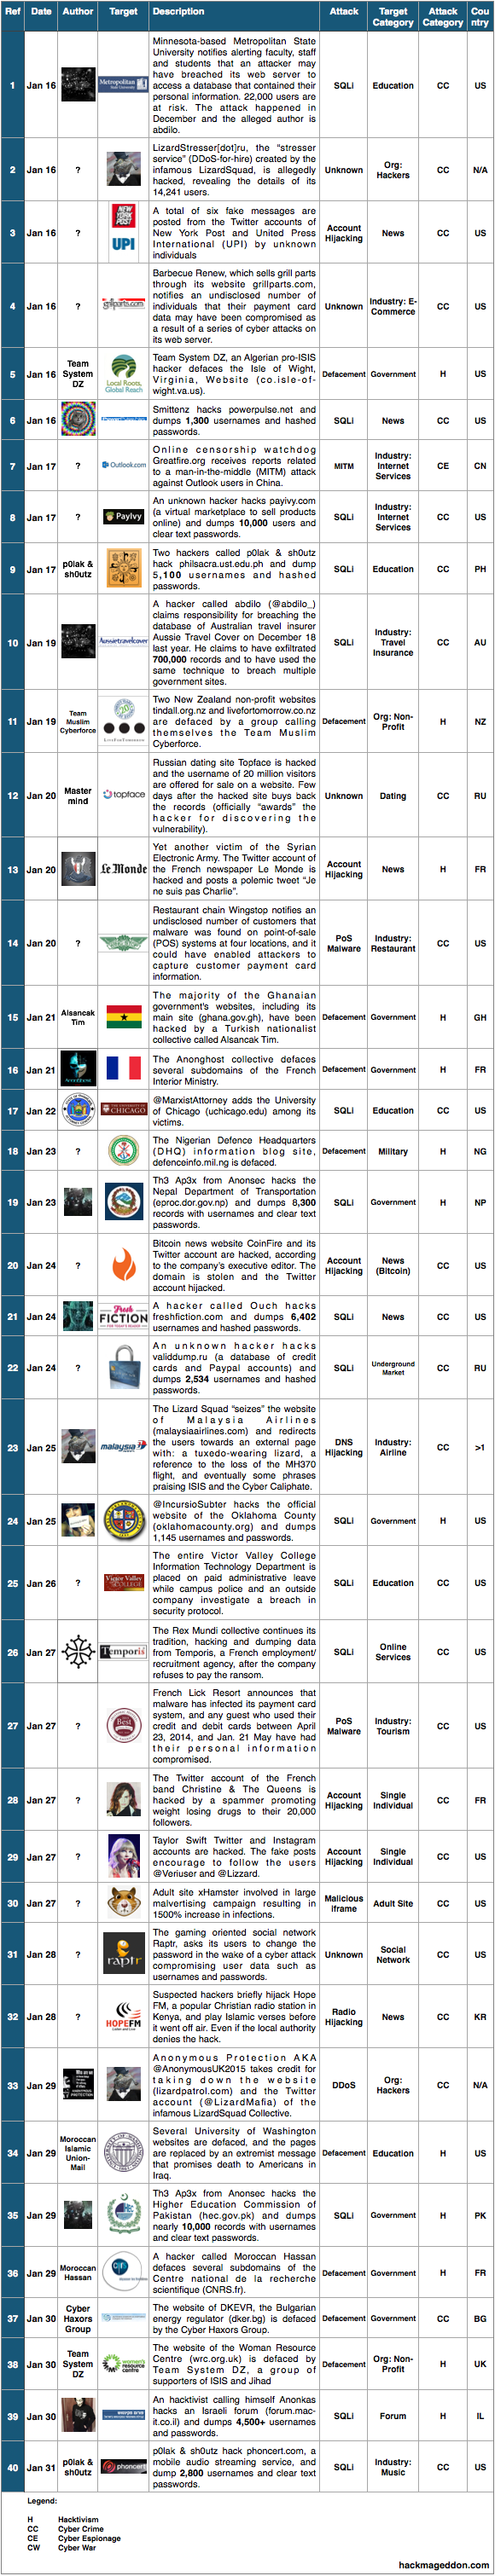 16-31 Jan 2015 Cyber Attacks Timeline